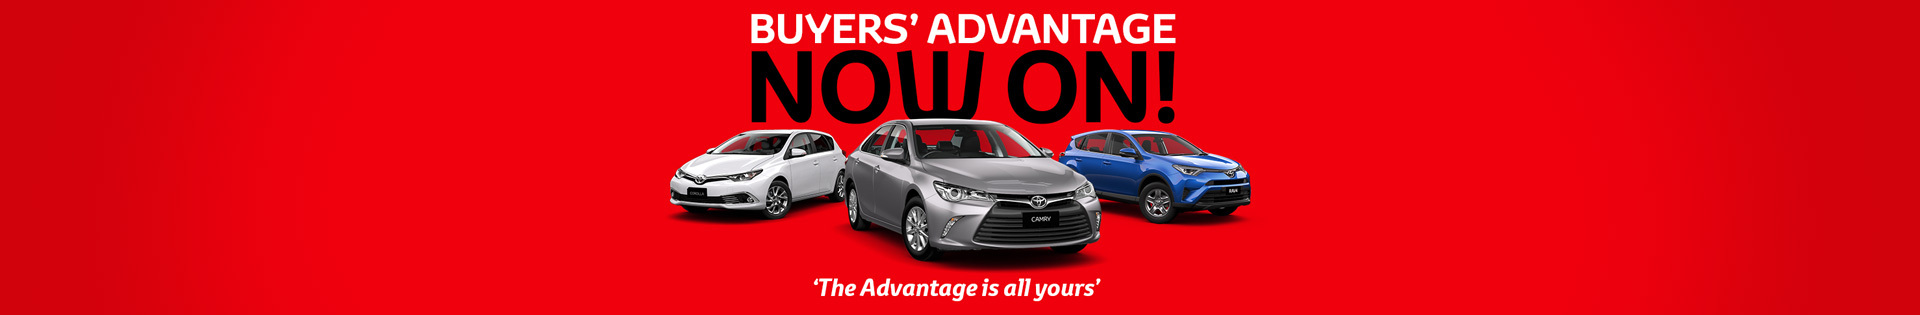 Toyota - National Offer - Buyers Advantage Now On! 'The advantage is all yours'